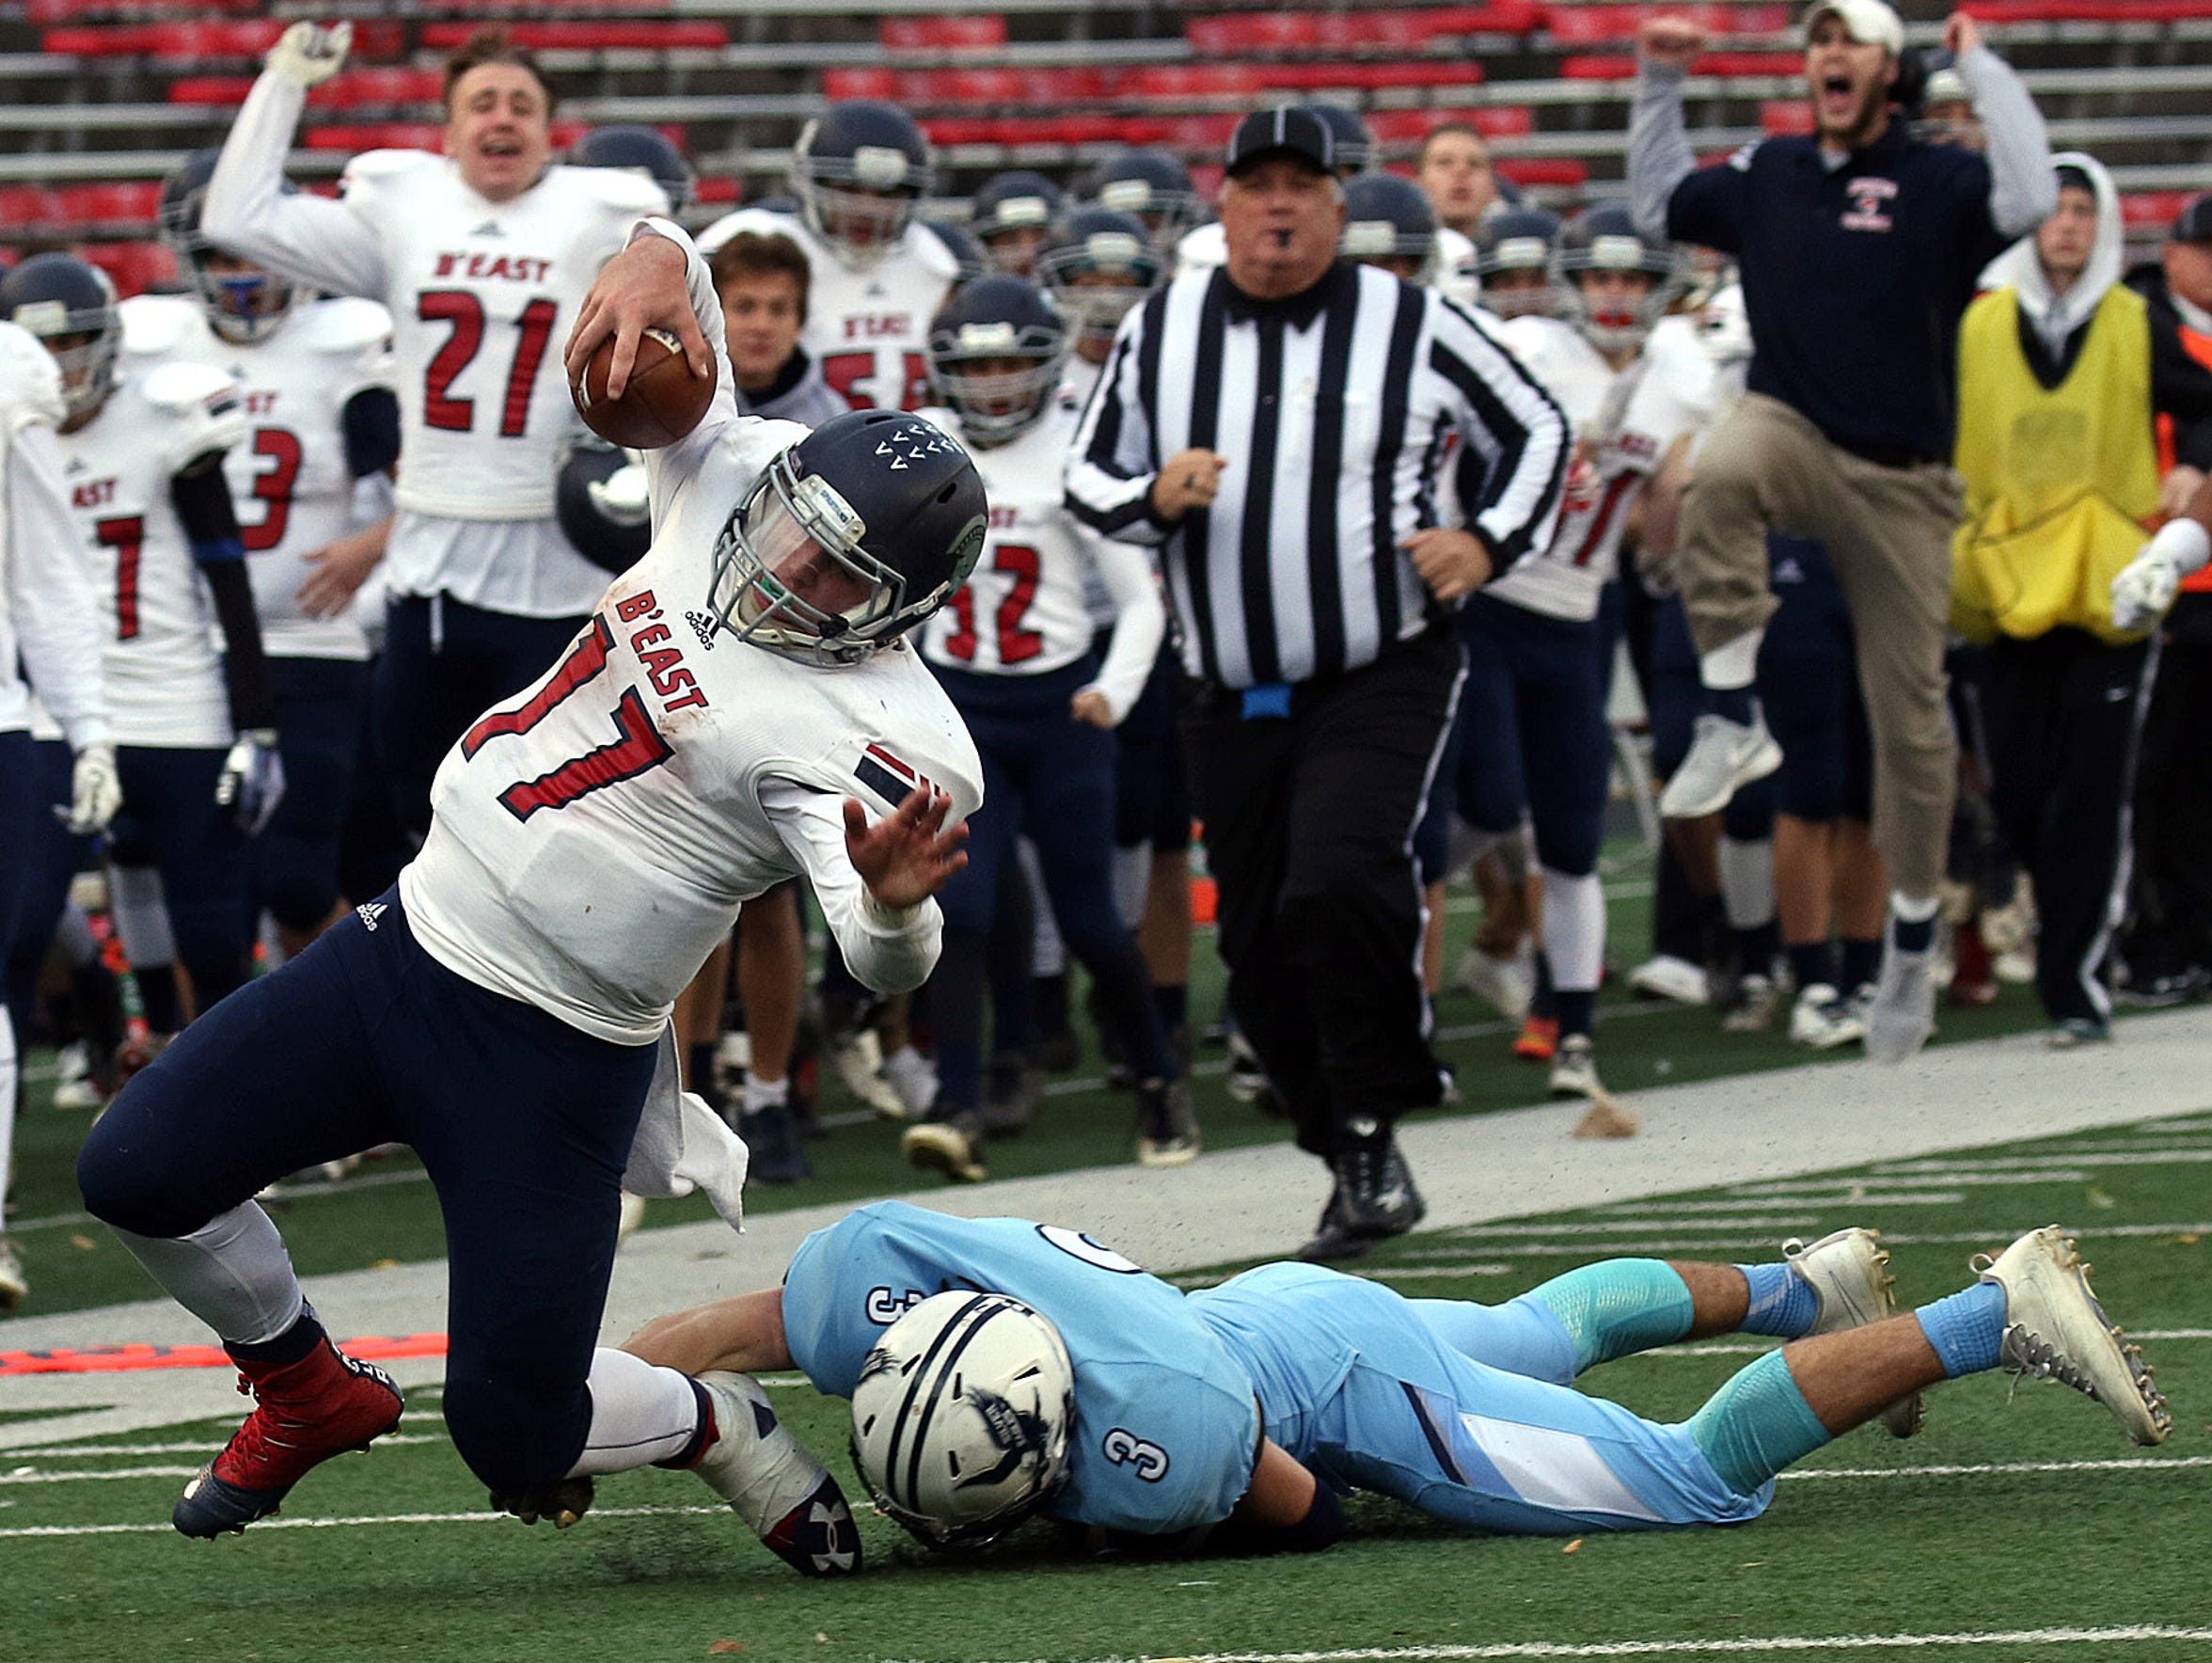 Jake Graf gets tackled after getting a first down on